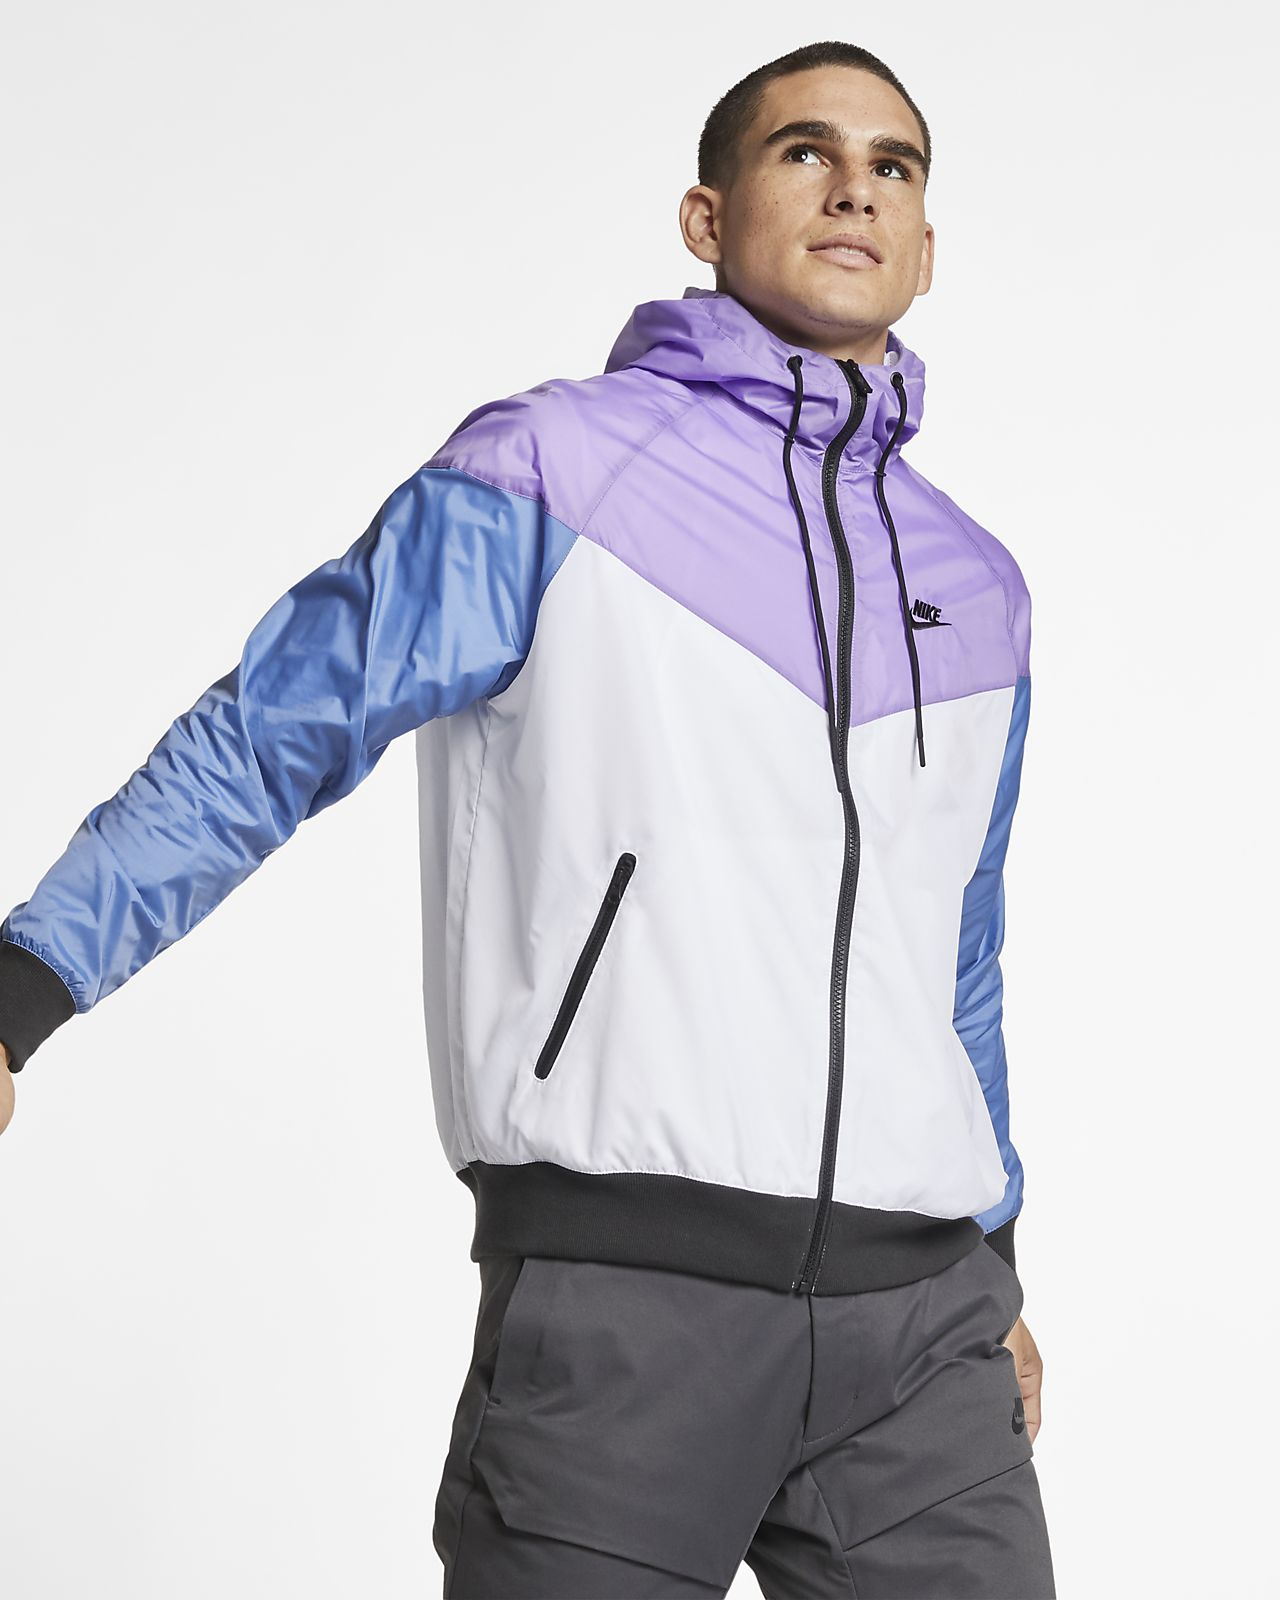 aed0d019ba8a Nike Sportswear Windrunner Men s Hooded Windbreaker. Nike.com